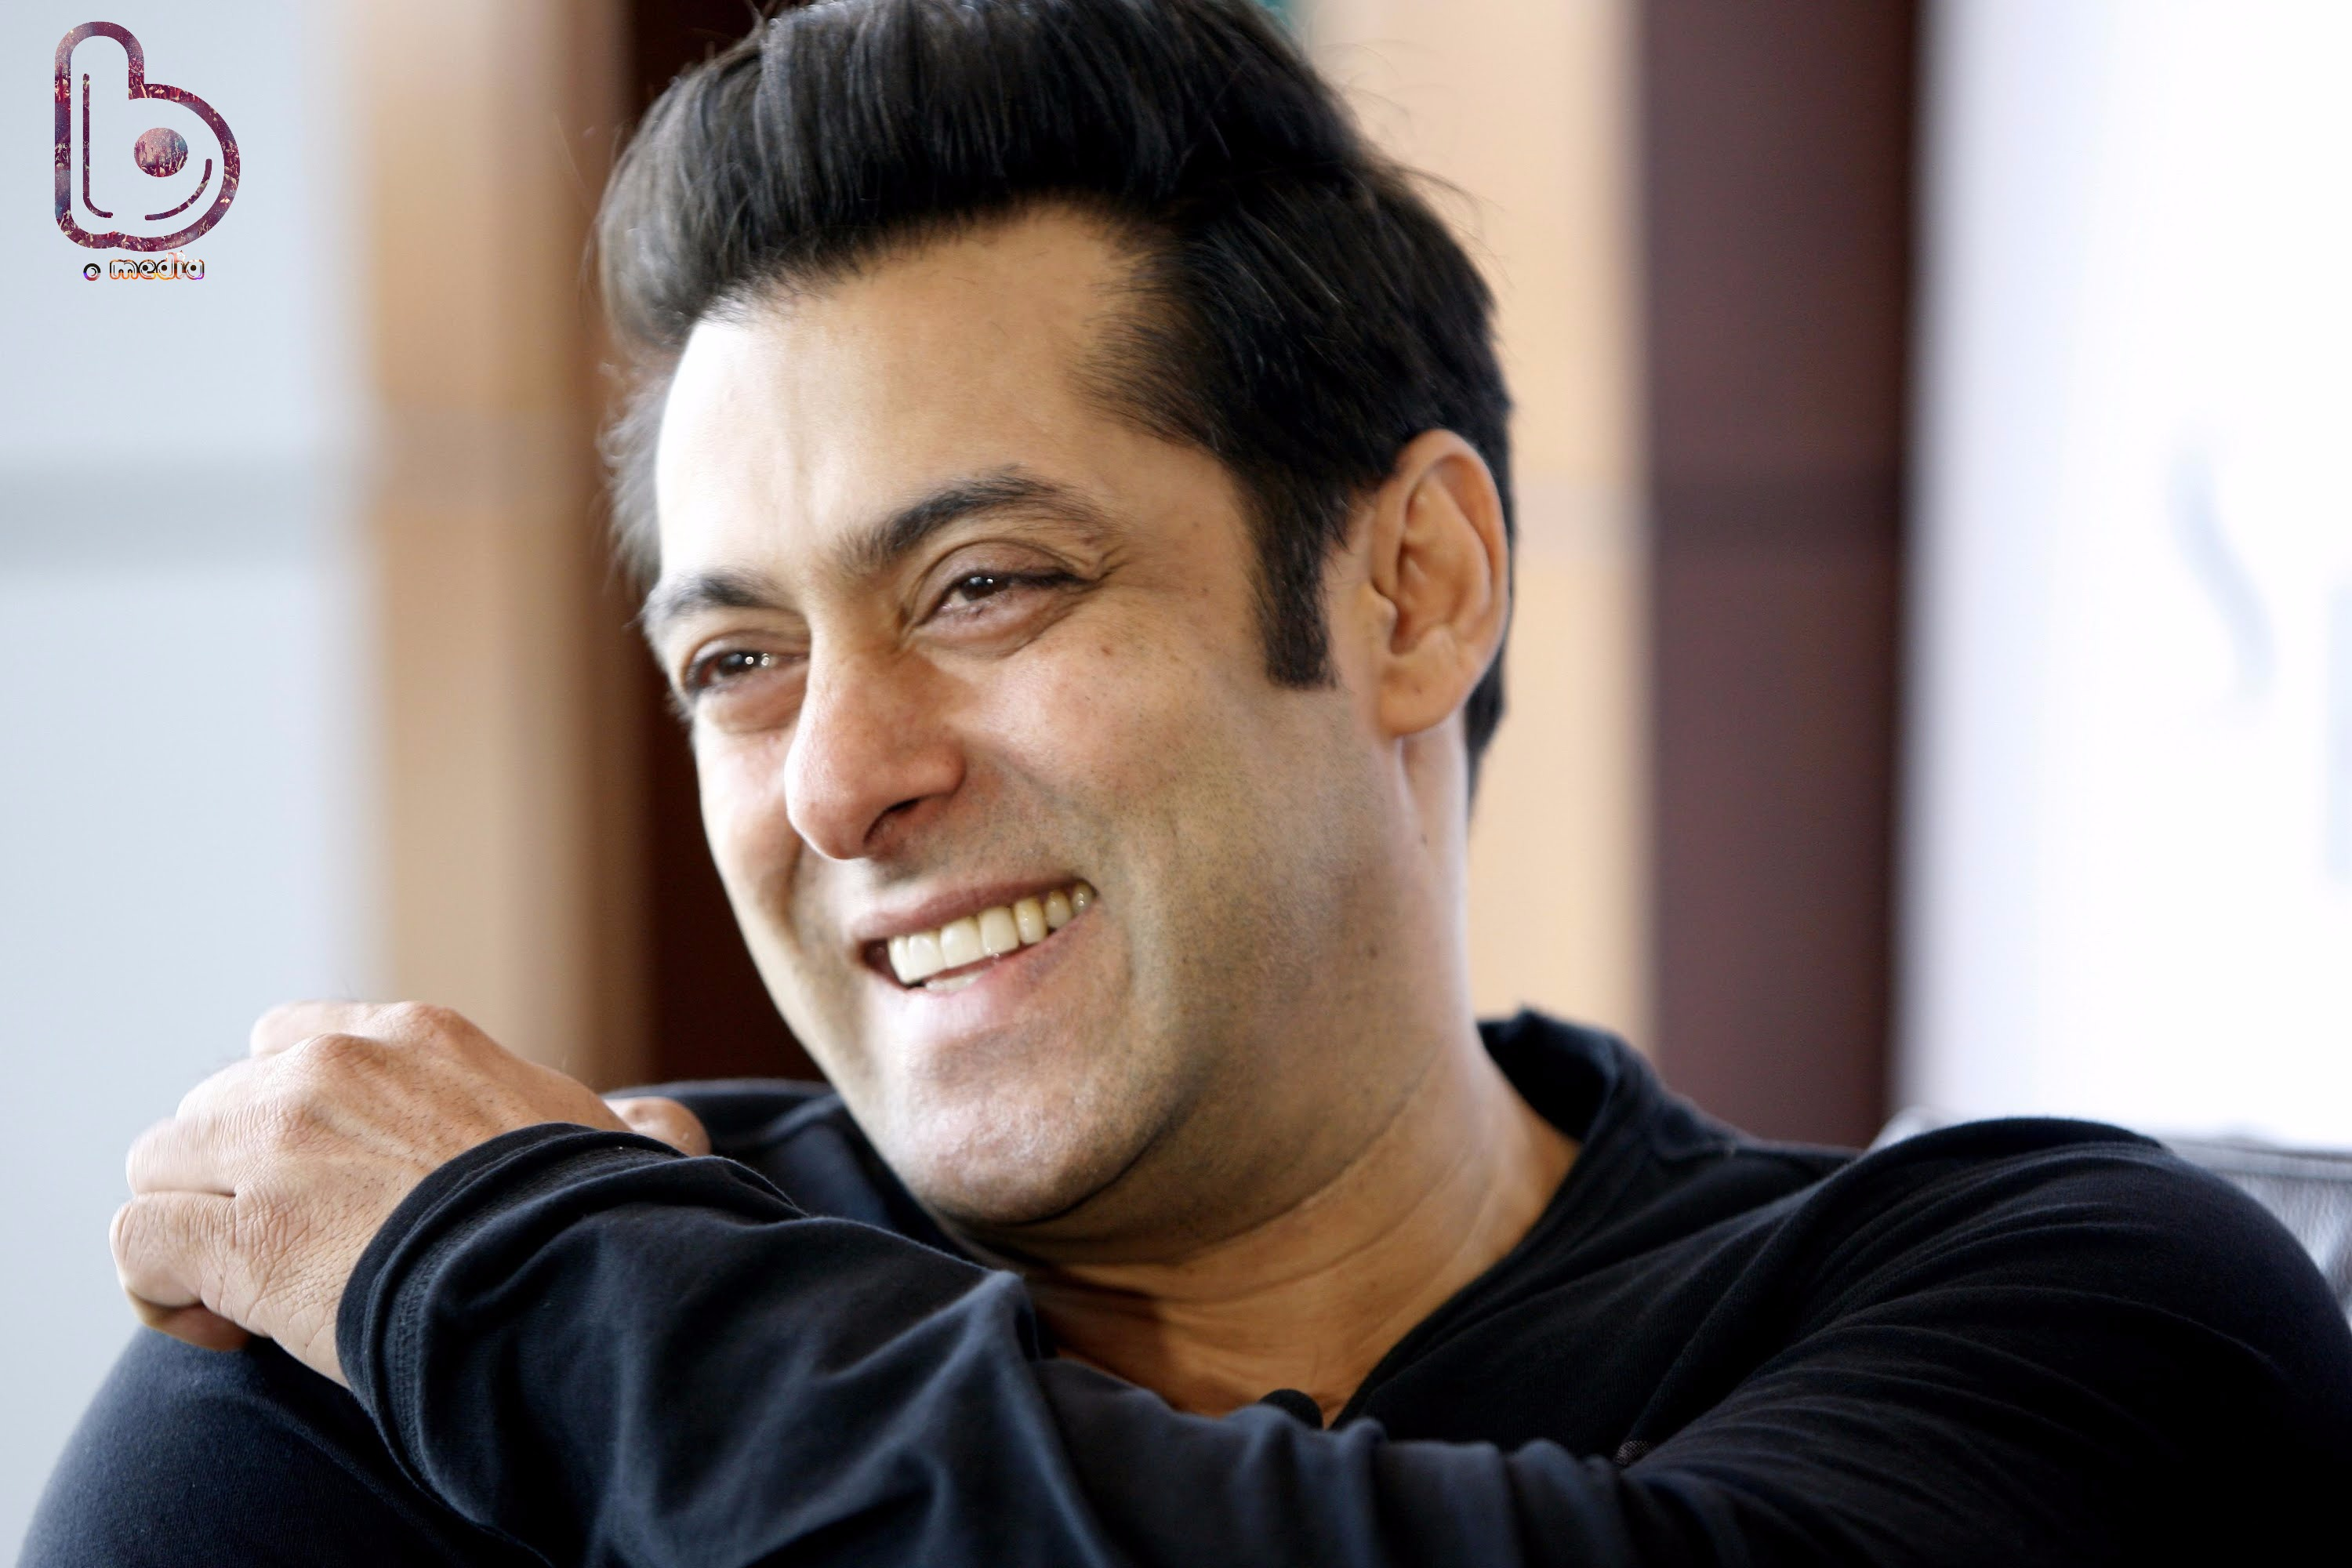 Salman Khan hit-and-run case latest update | Bombay High Court says Salman Khan can't be convicted!